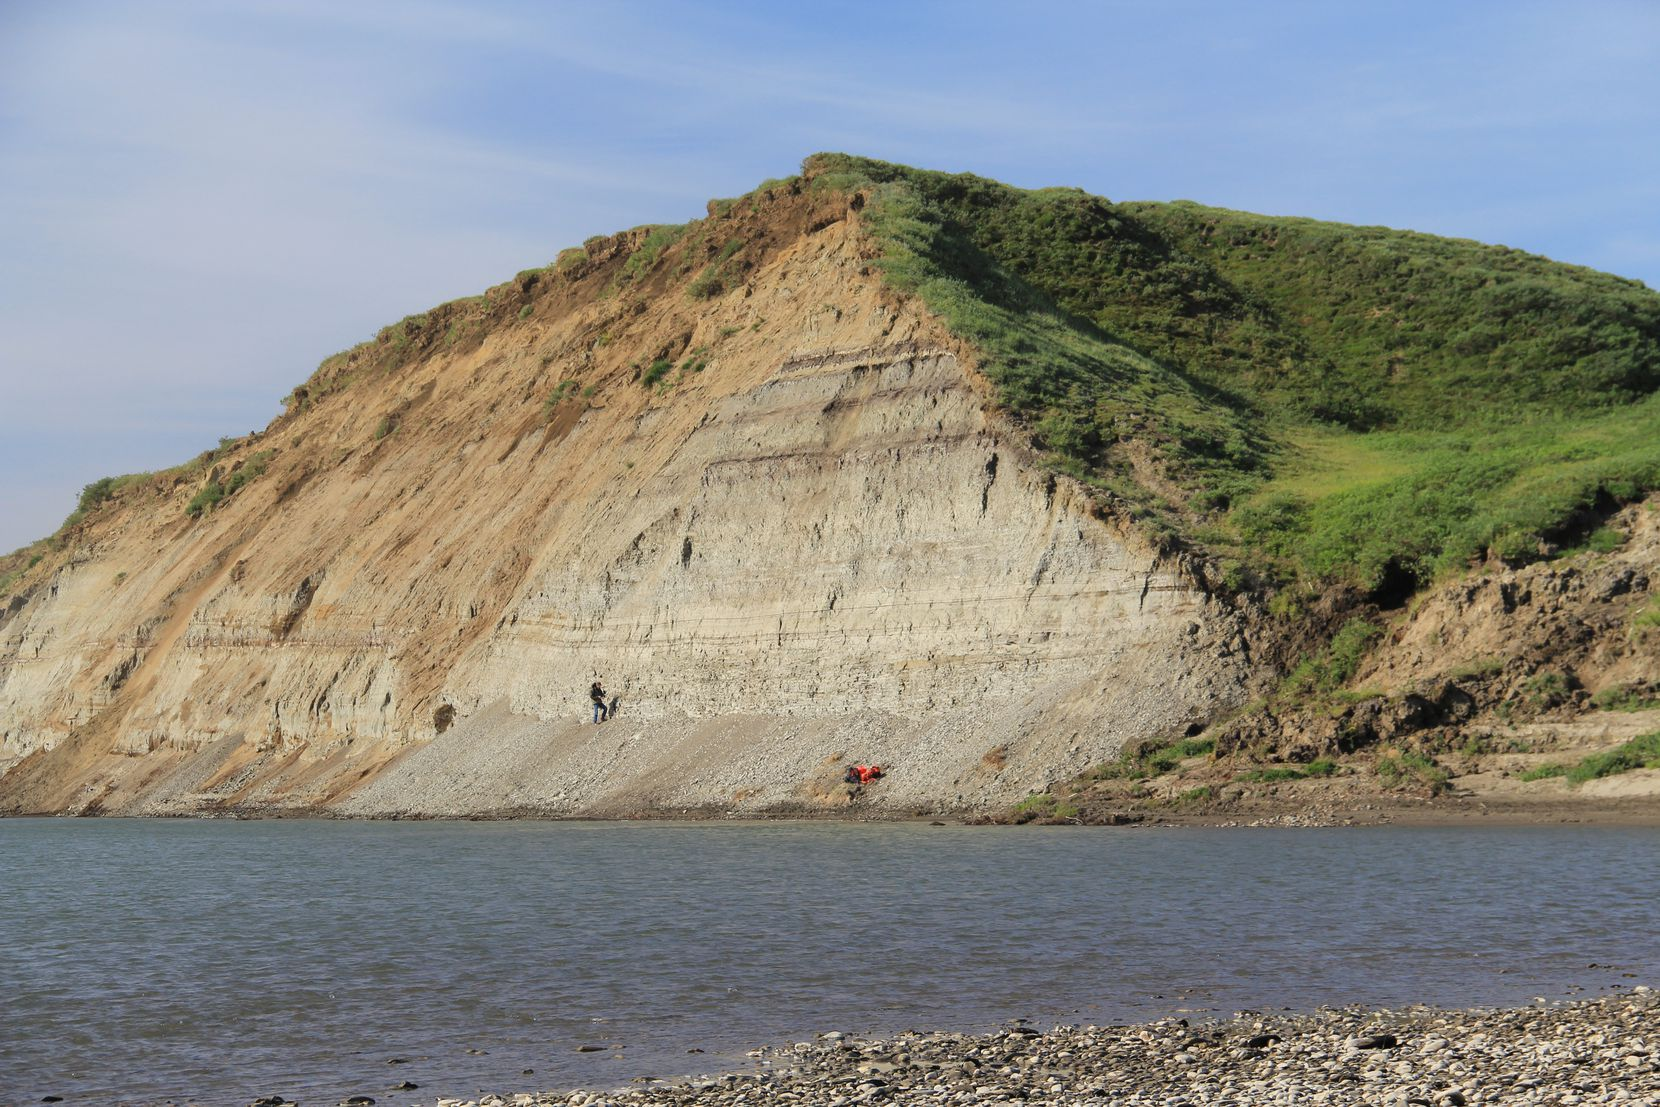 Dr. Paul McCarthy standing at the base of the bluff along Alaska's Colville River in 2012 where the baby dinosaur's jawbone was found.